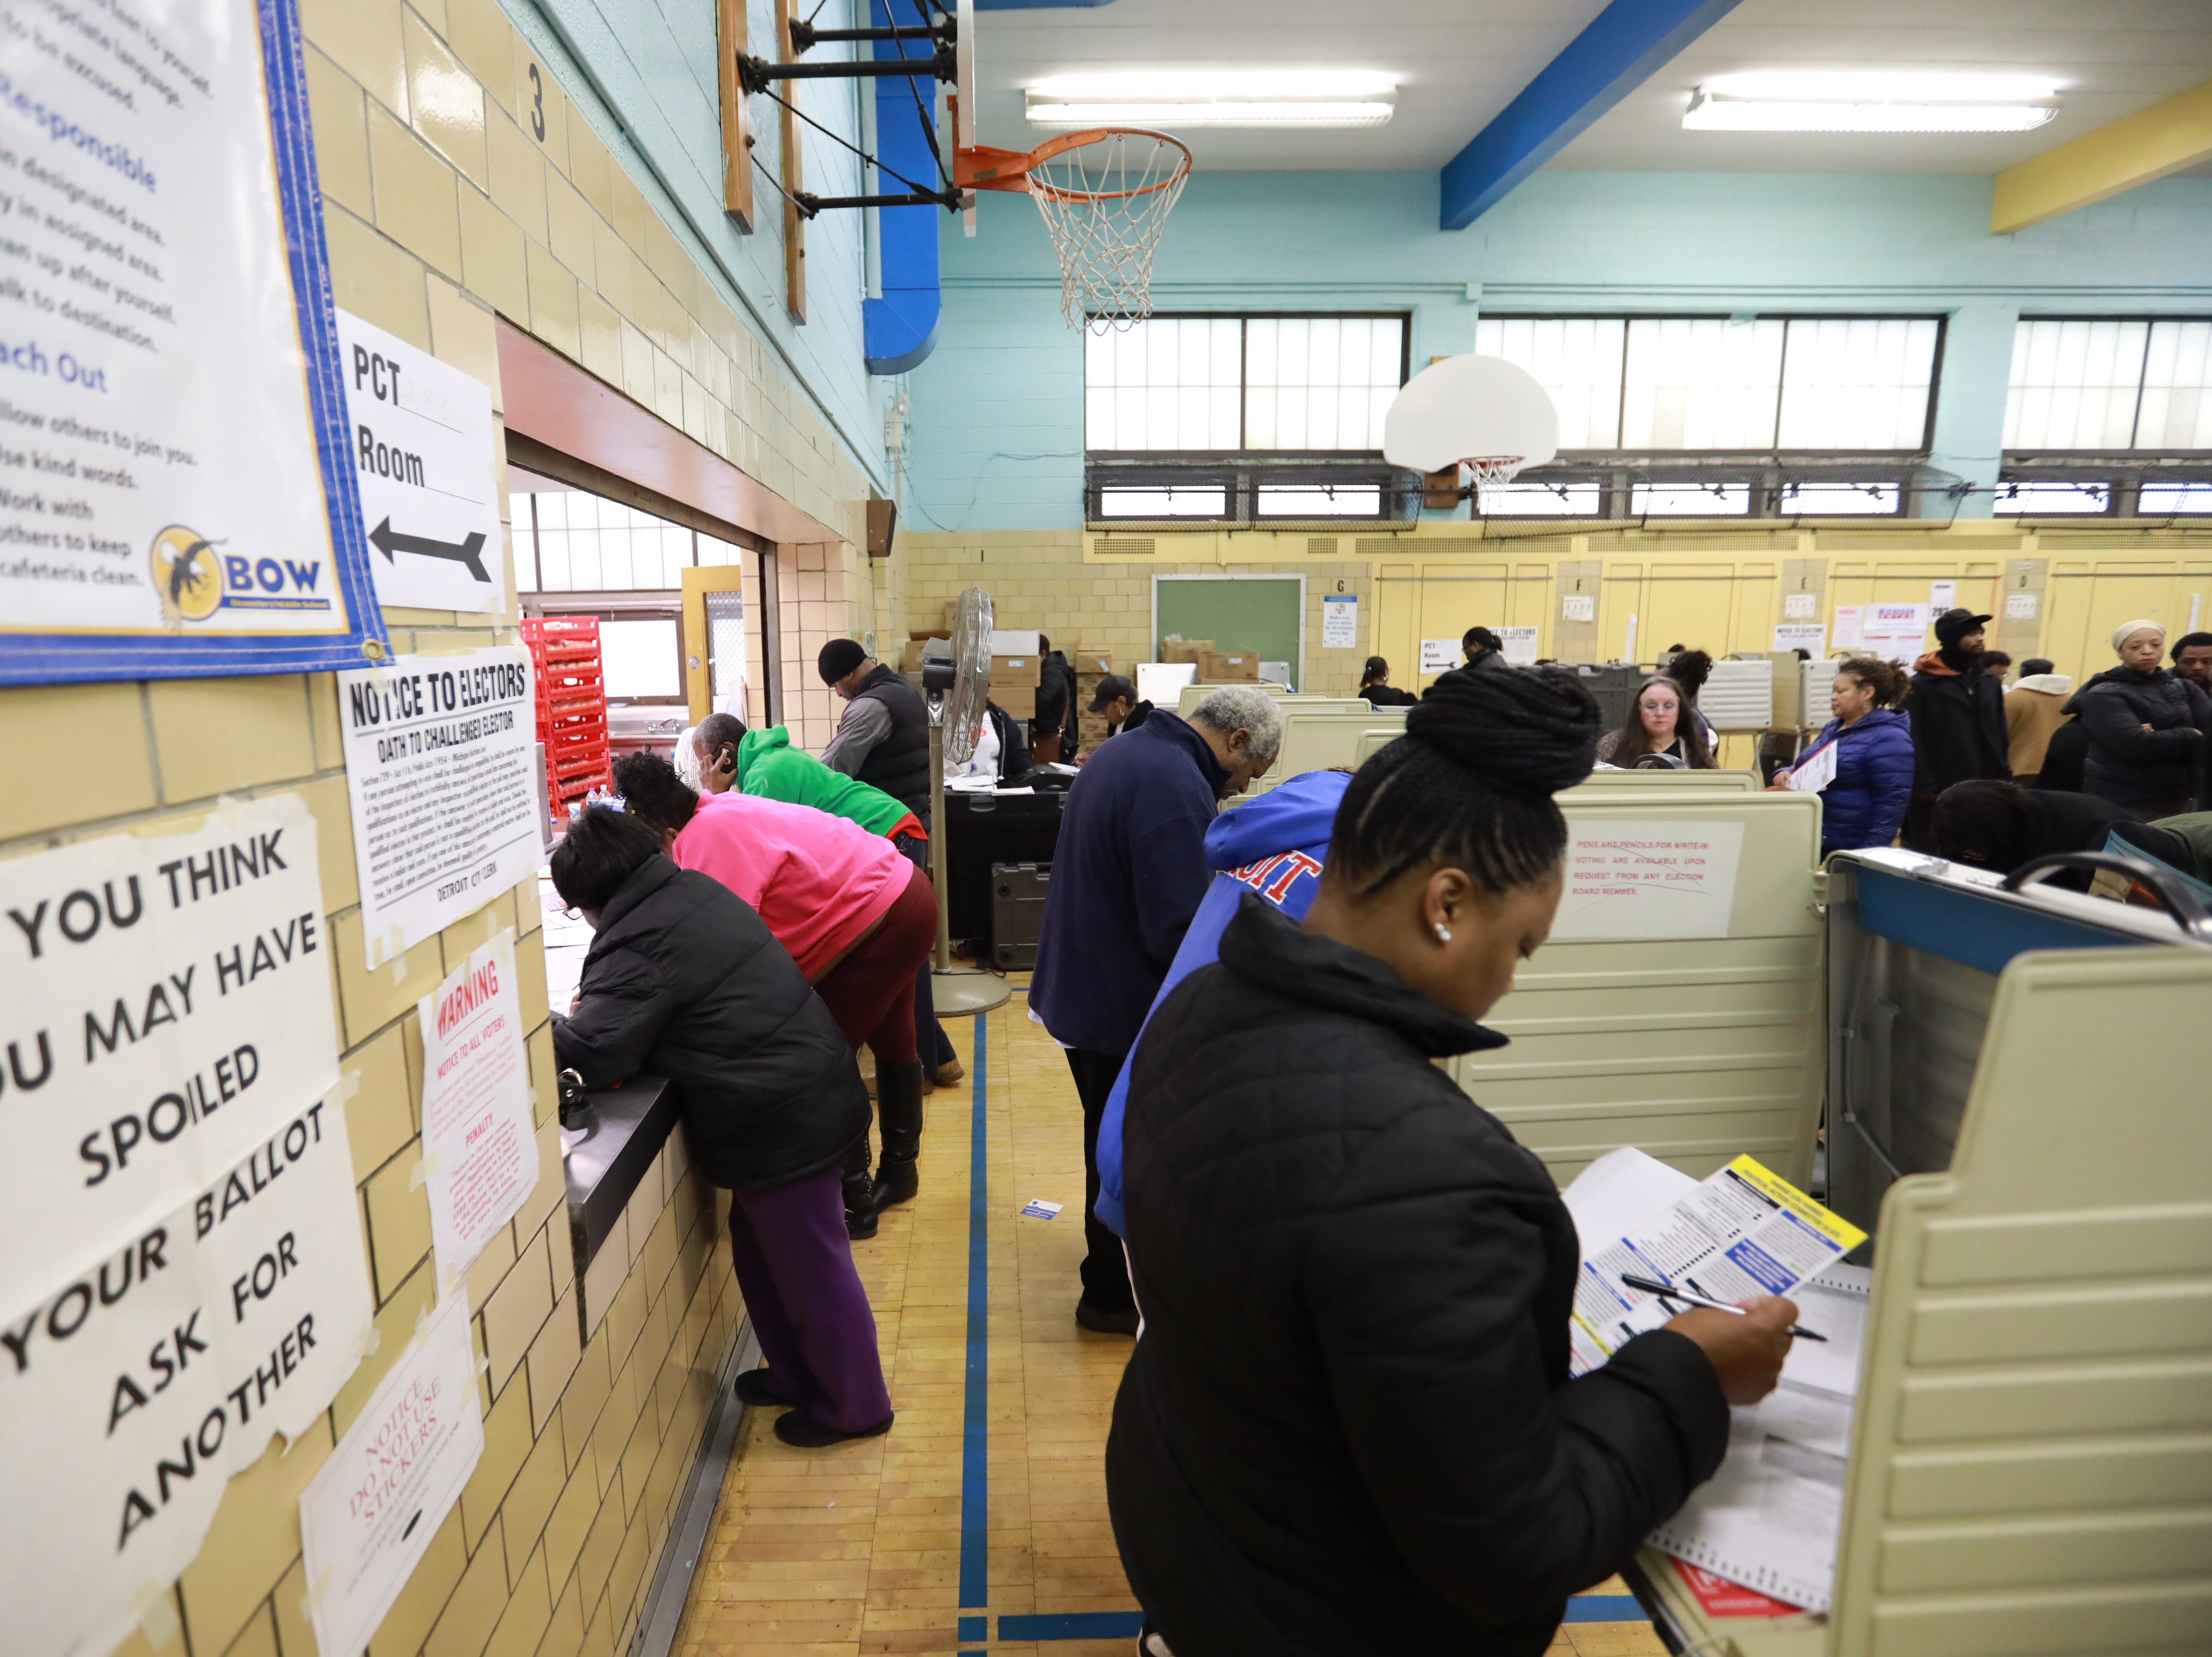 Detroit residents vote at Bow Elementary School  where multiple precincts are located for the midterm elections in Detroit on Tuesday, Nov. 6, 2018.